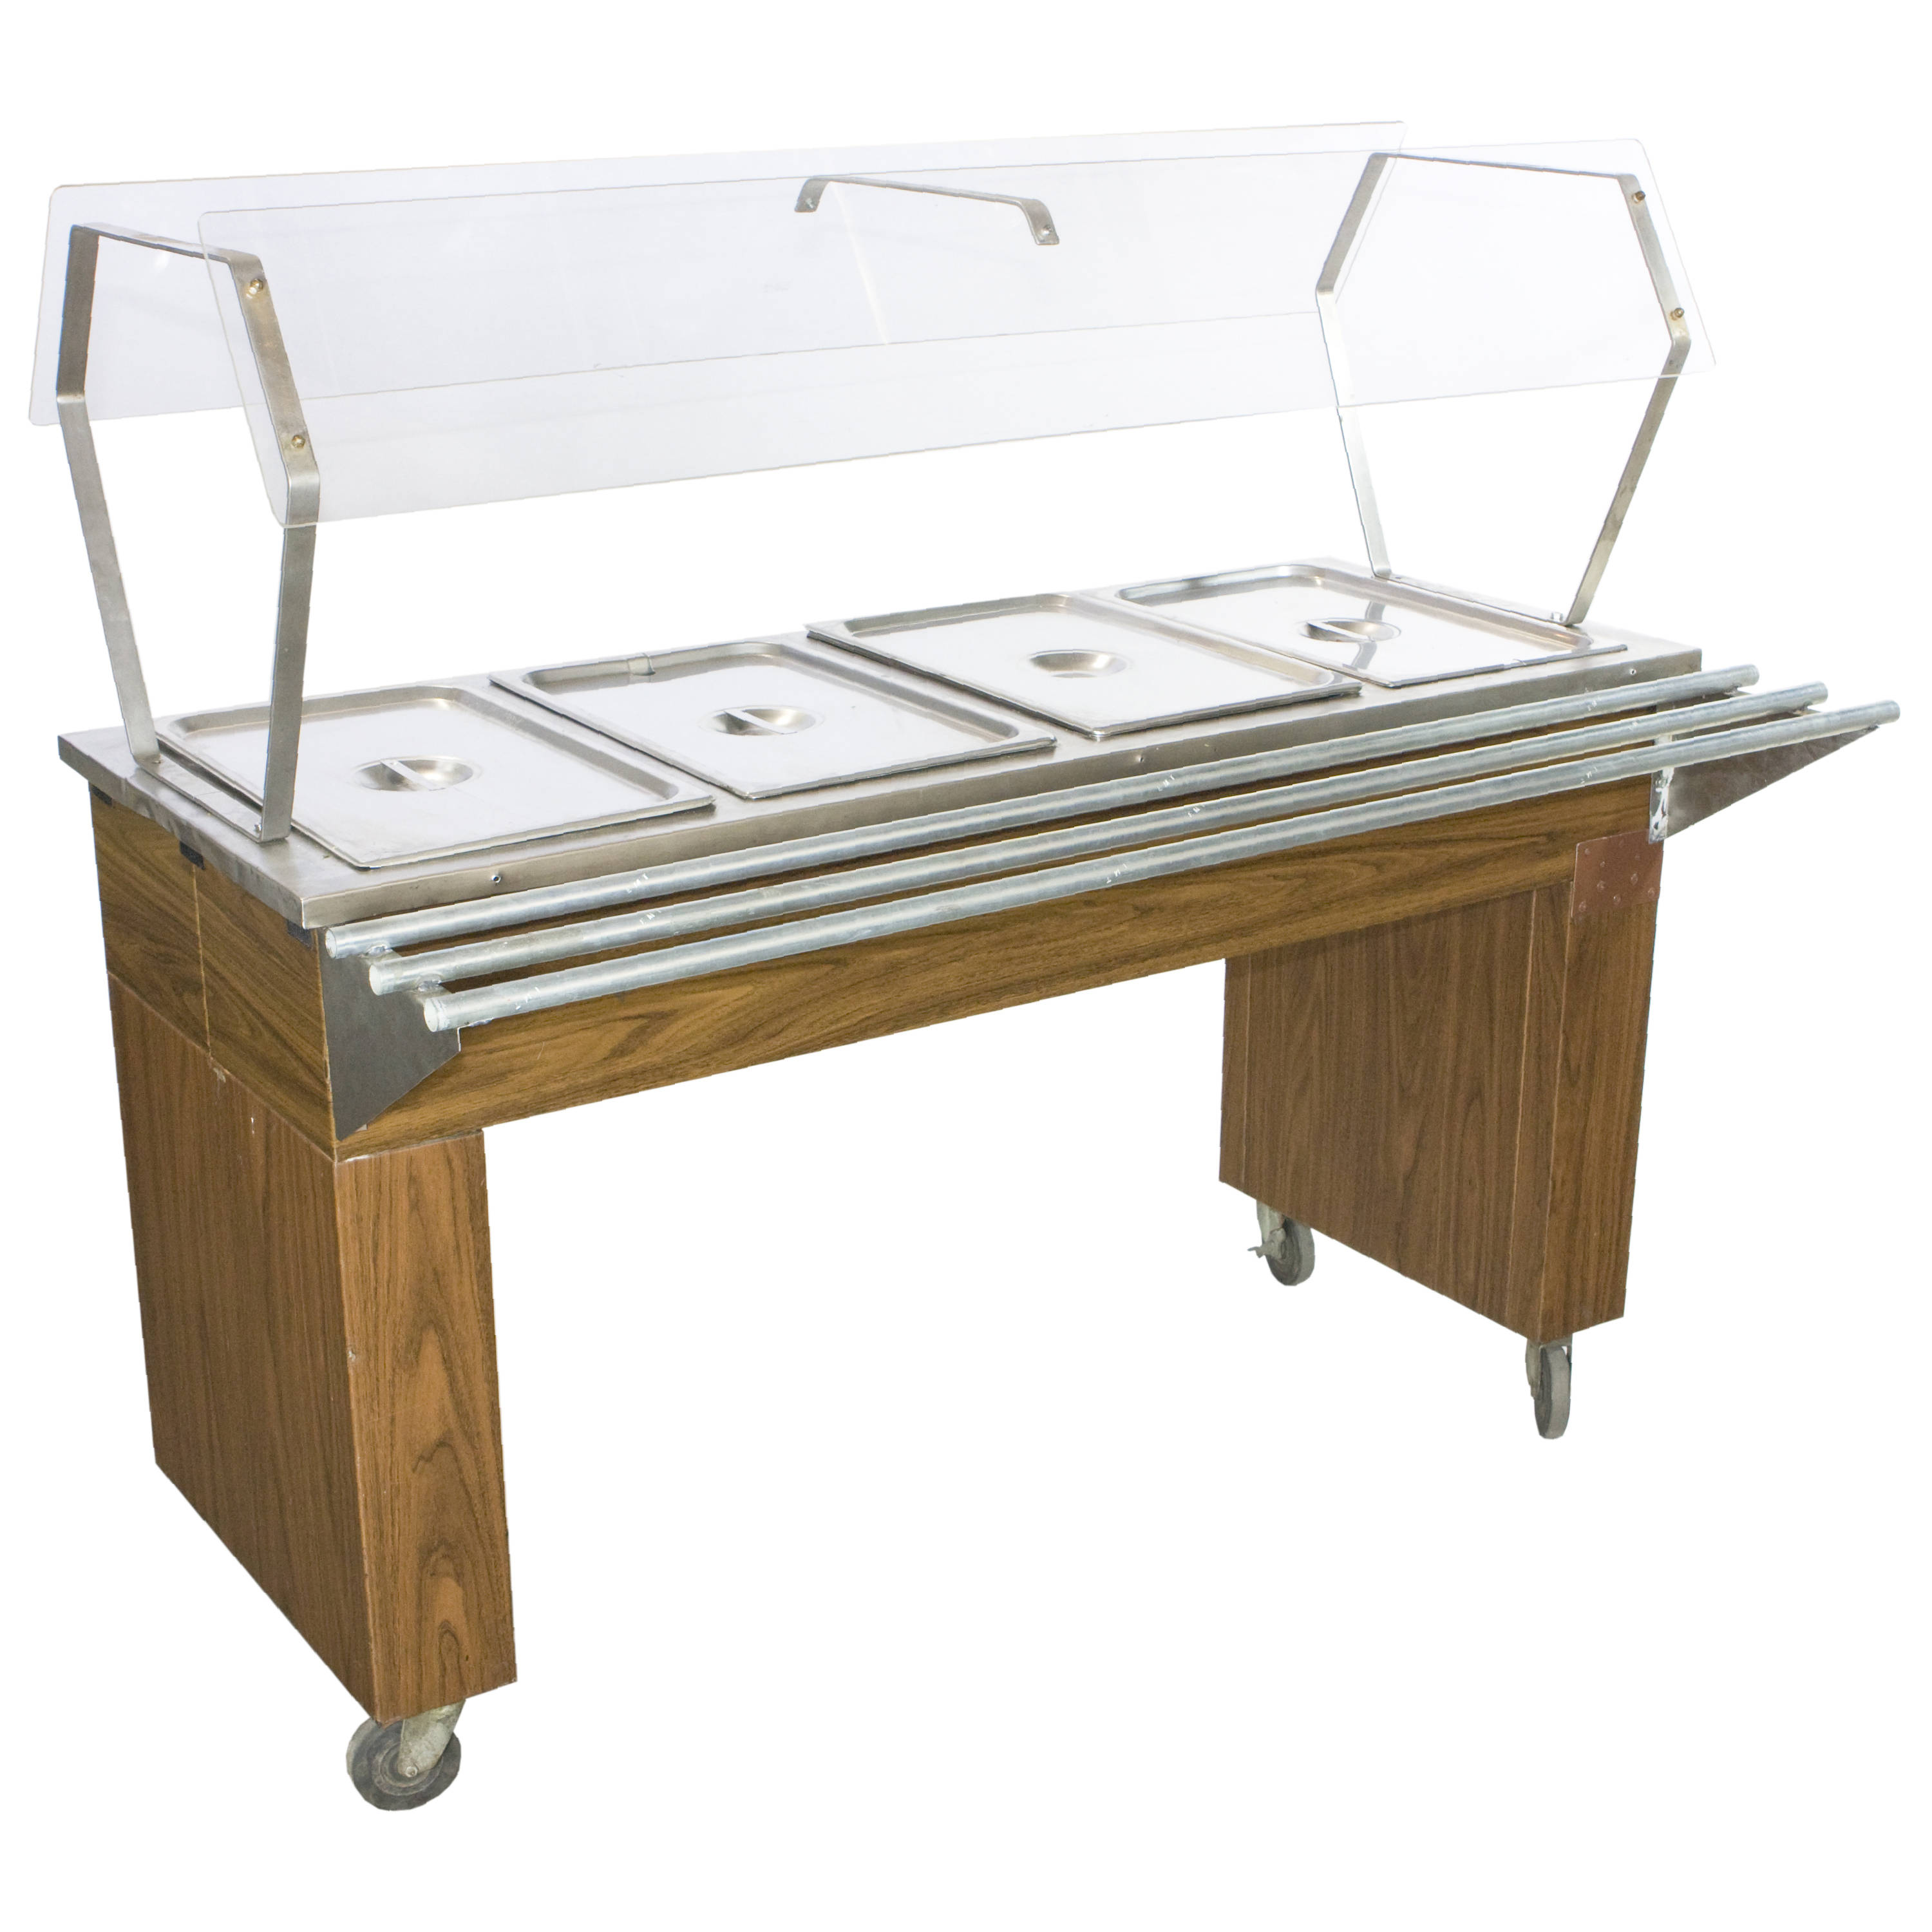 Cafeteria steam table w tray rail sneeze guard air designs - Sneeze guard for steam table ...